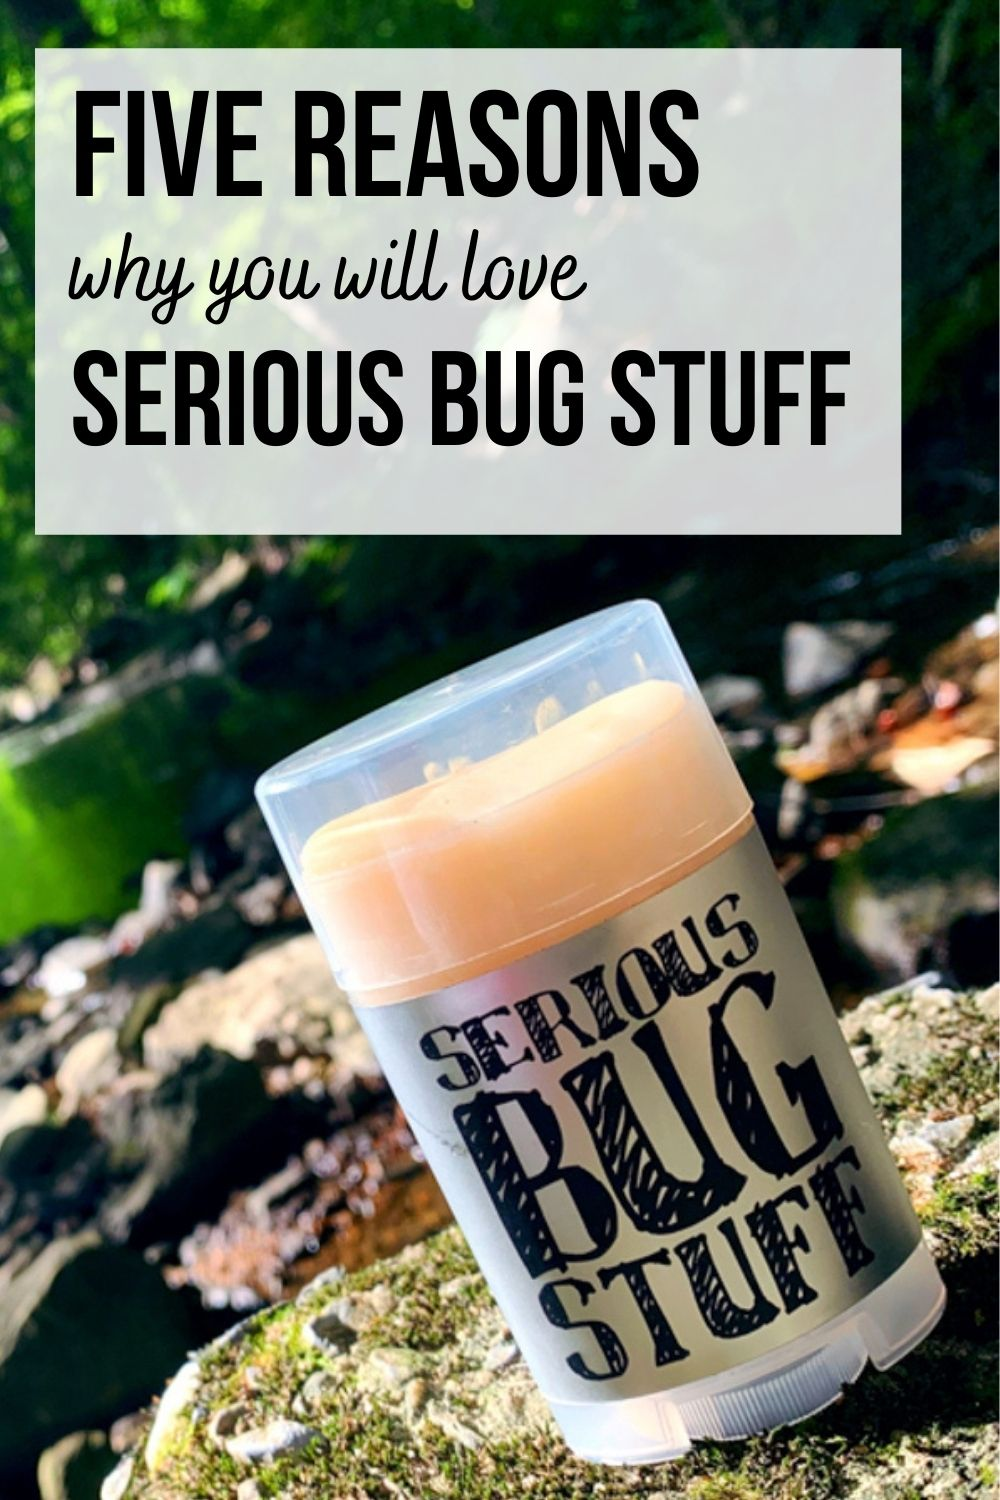 """A tube of all natural bug repellent sits on a mossy rock with text that says """"5 reasons to love Serious Bug Stuff"""""""